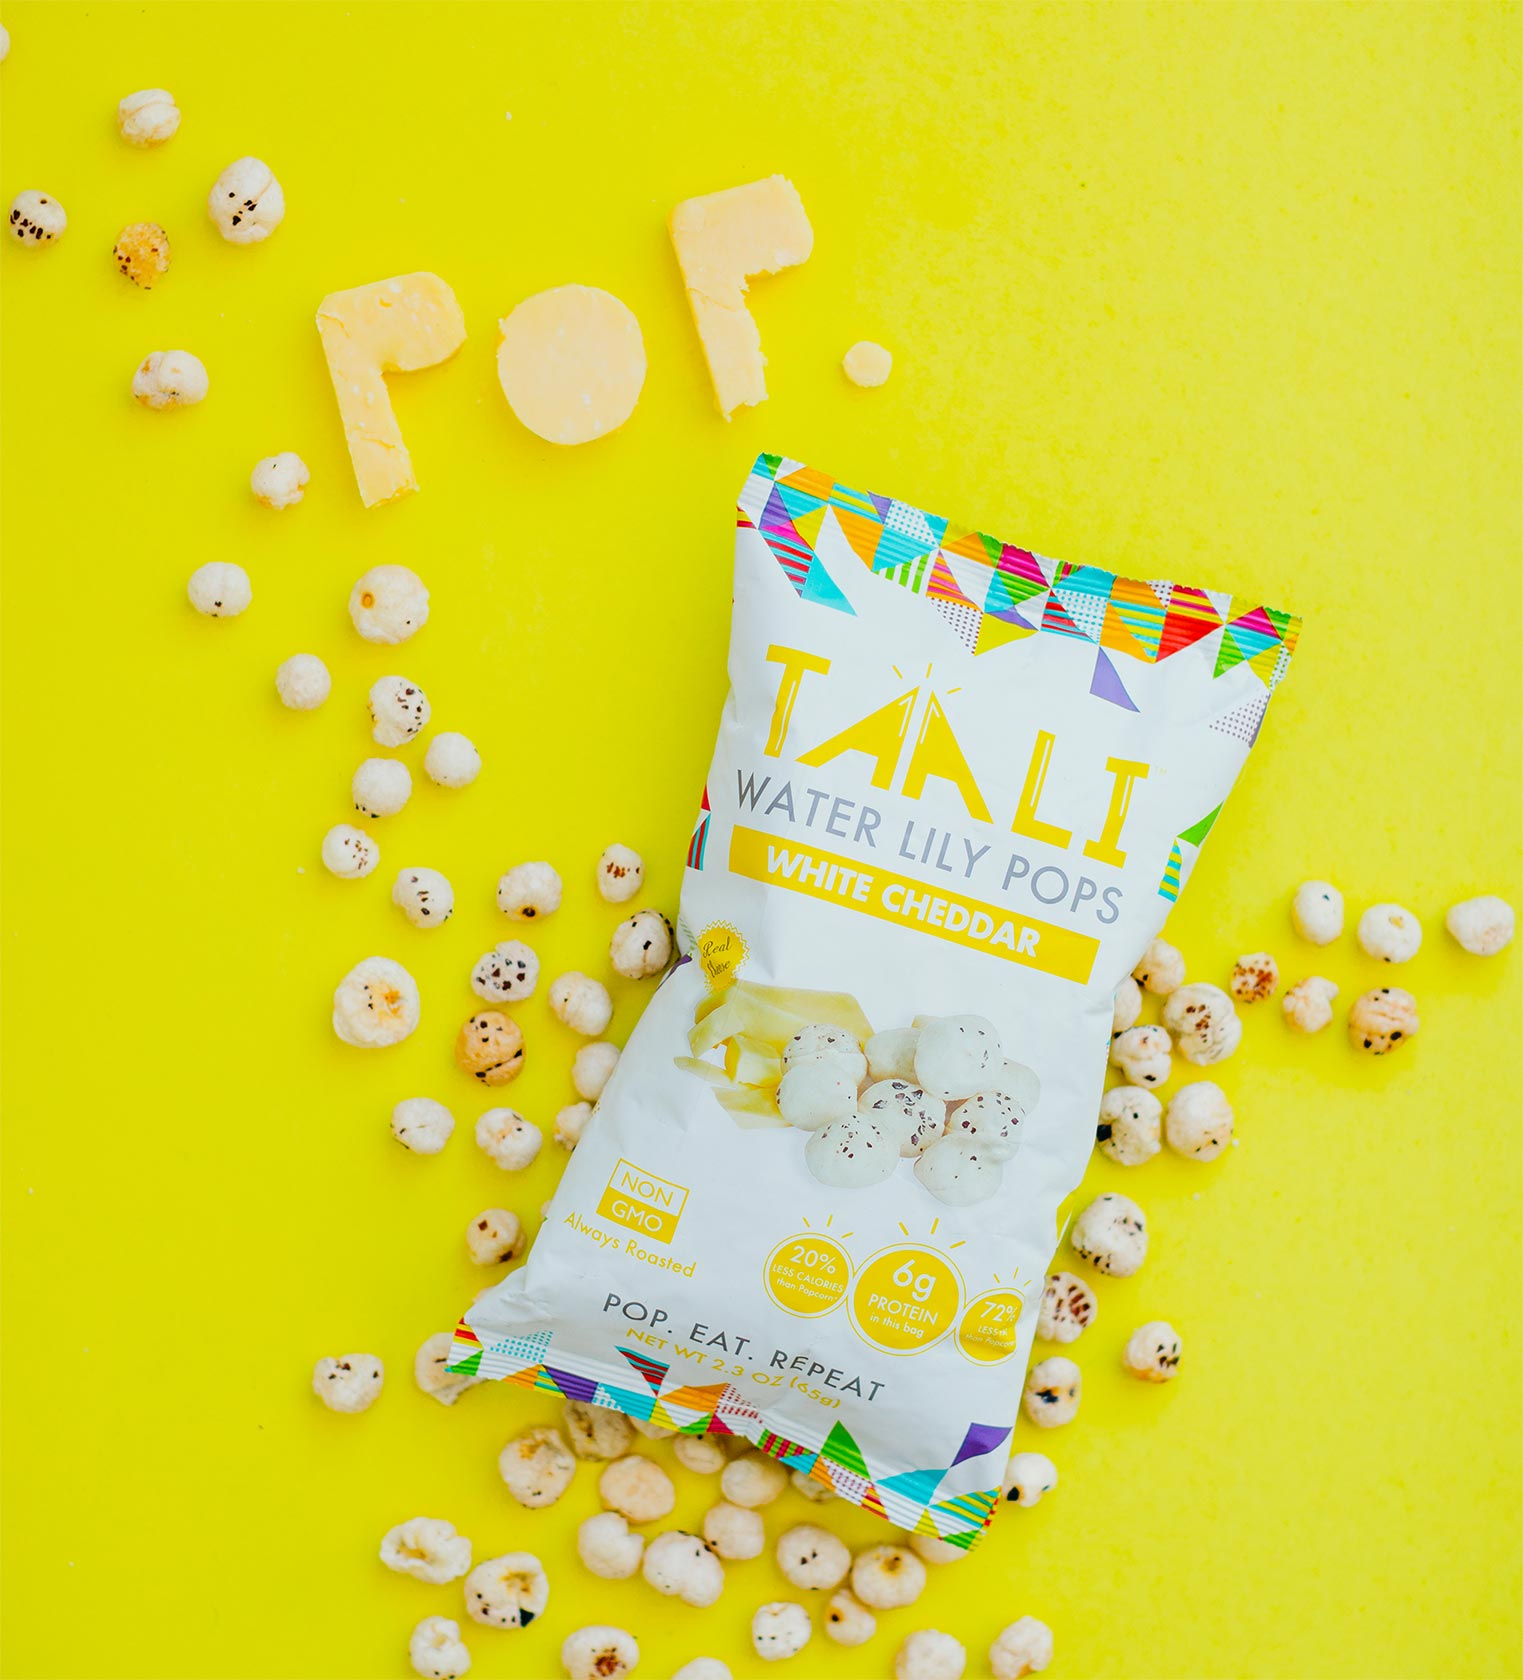 Taali Water Lily Pops is an all natural plant based snack content creation by Meraki Narrative: A Branding, Design, and Creative Agency